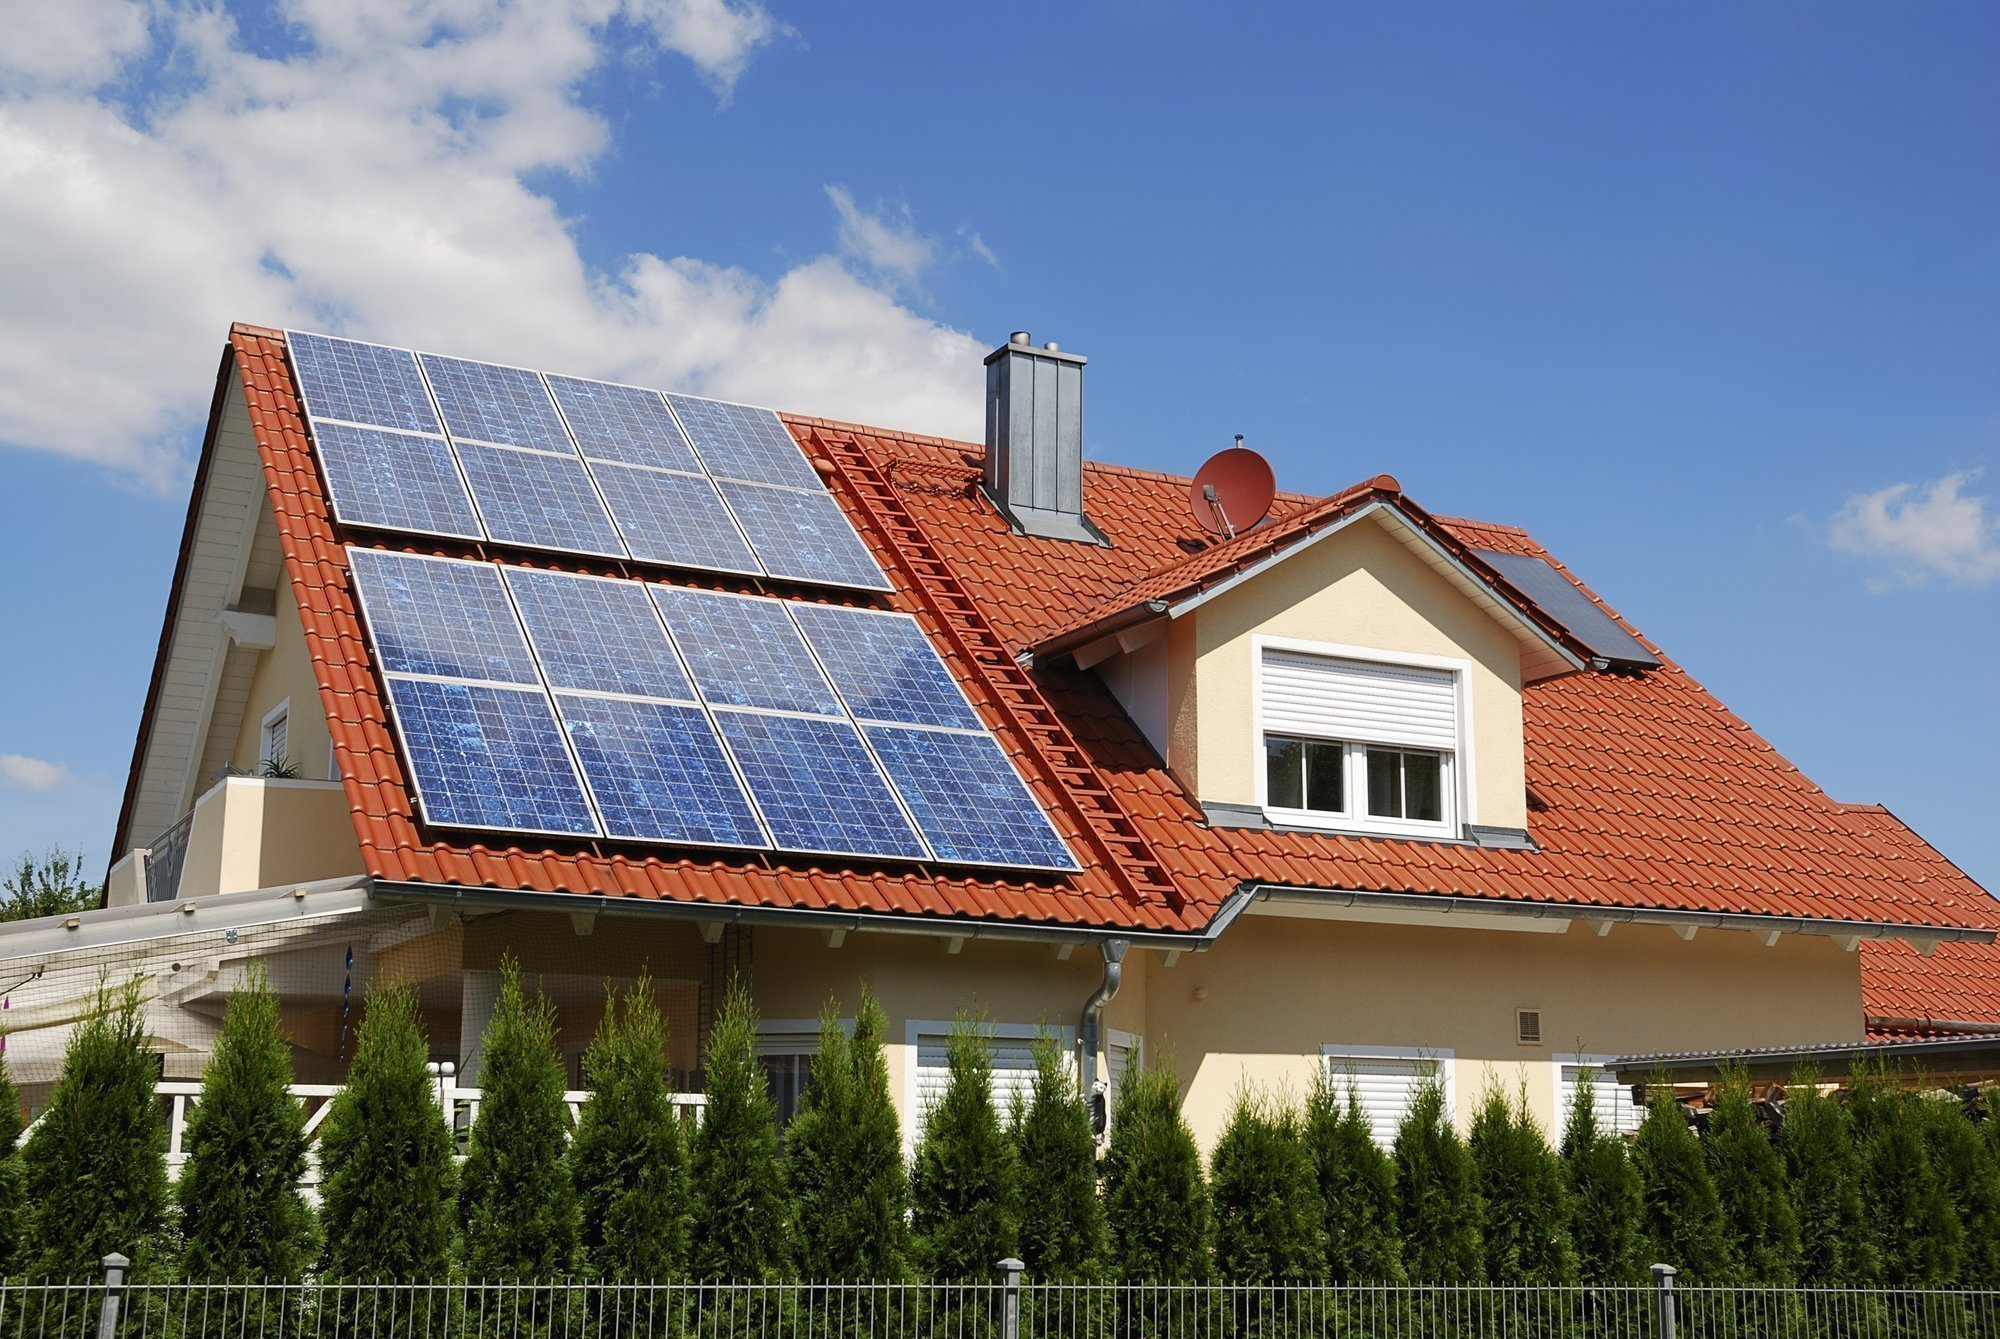 Home with Solar energy panels